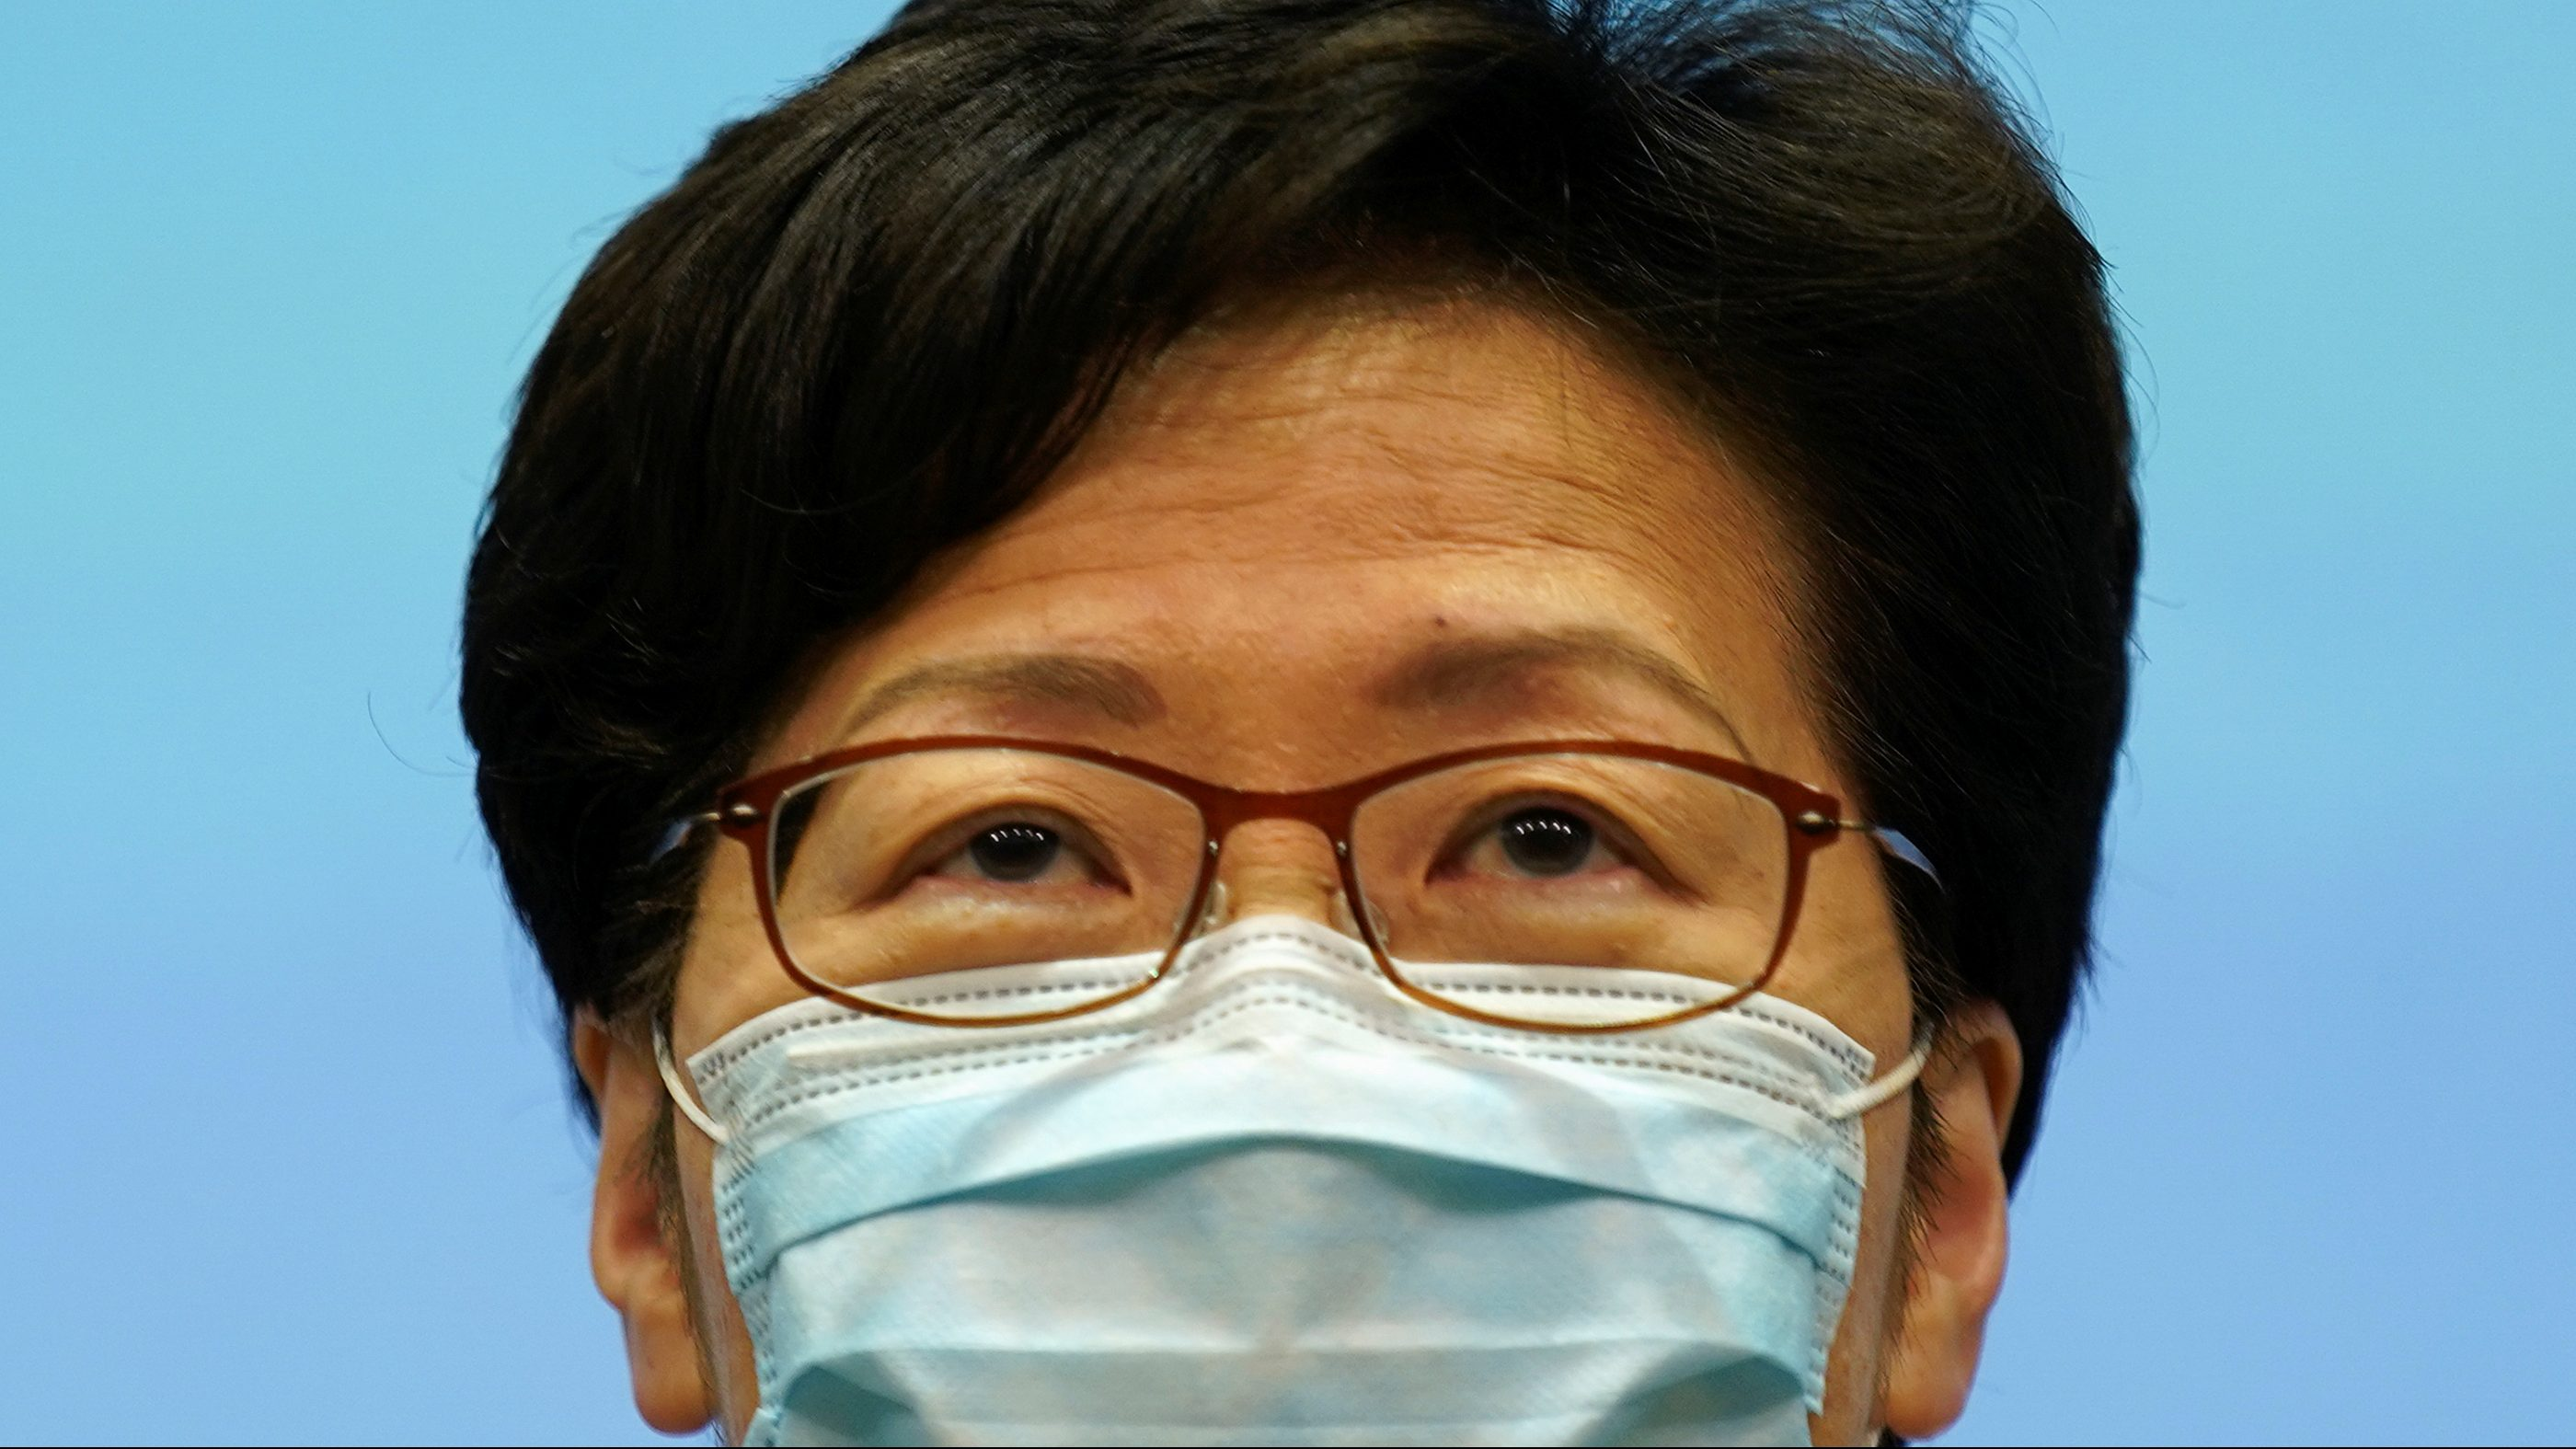 Hong Kong's chief executive Carrie Lam wears a mask at a press conference